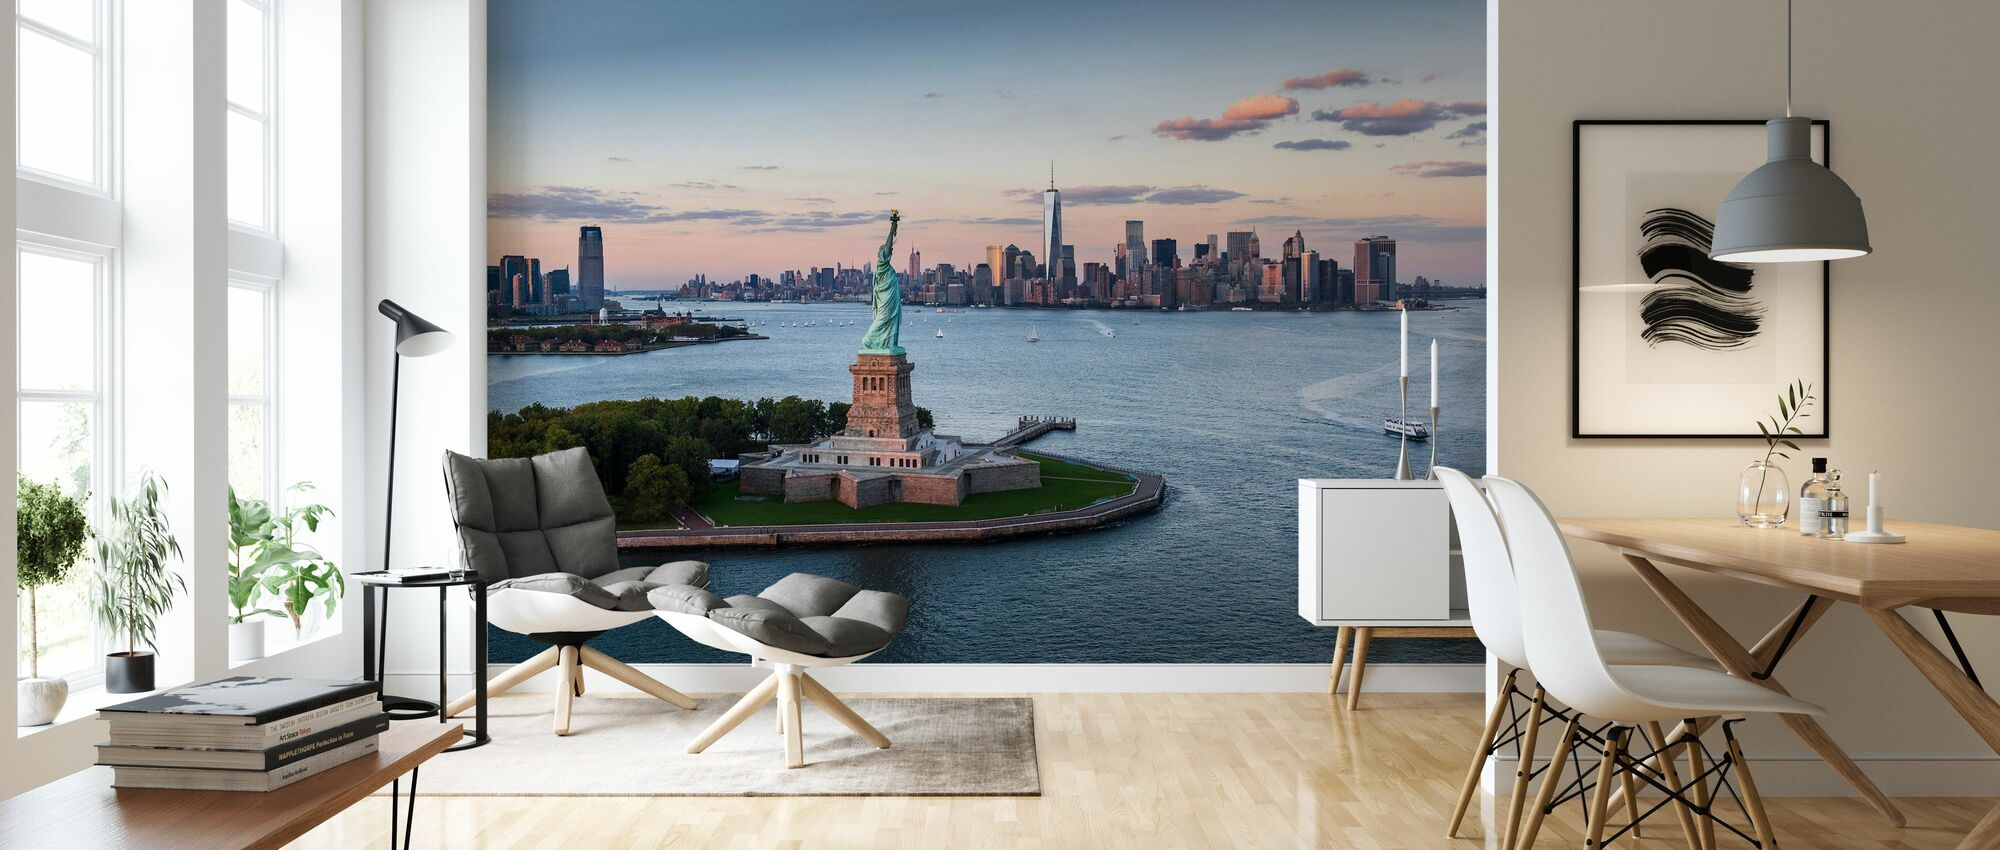 Aerial View of Statue of Liberty - Wallpaper - Living Room